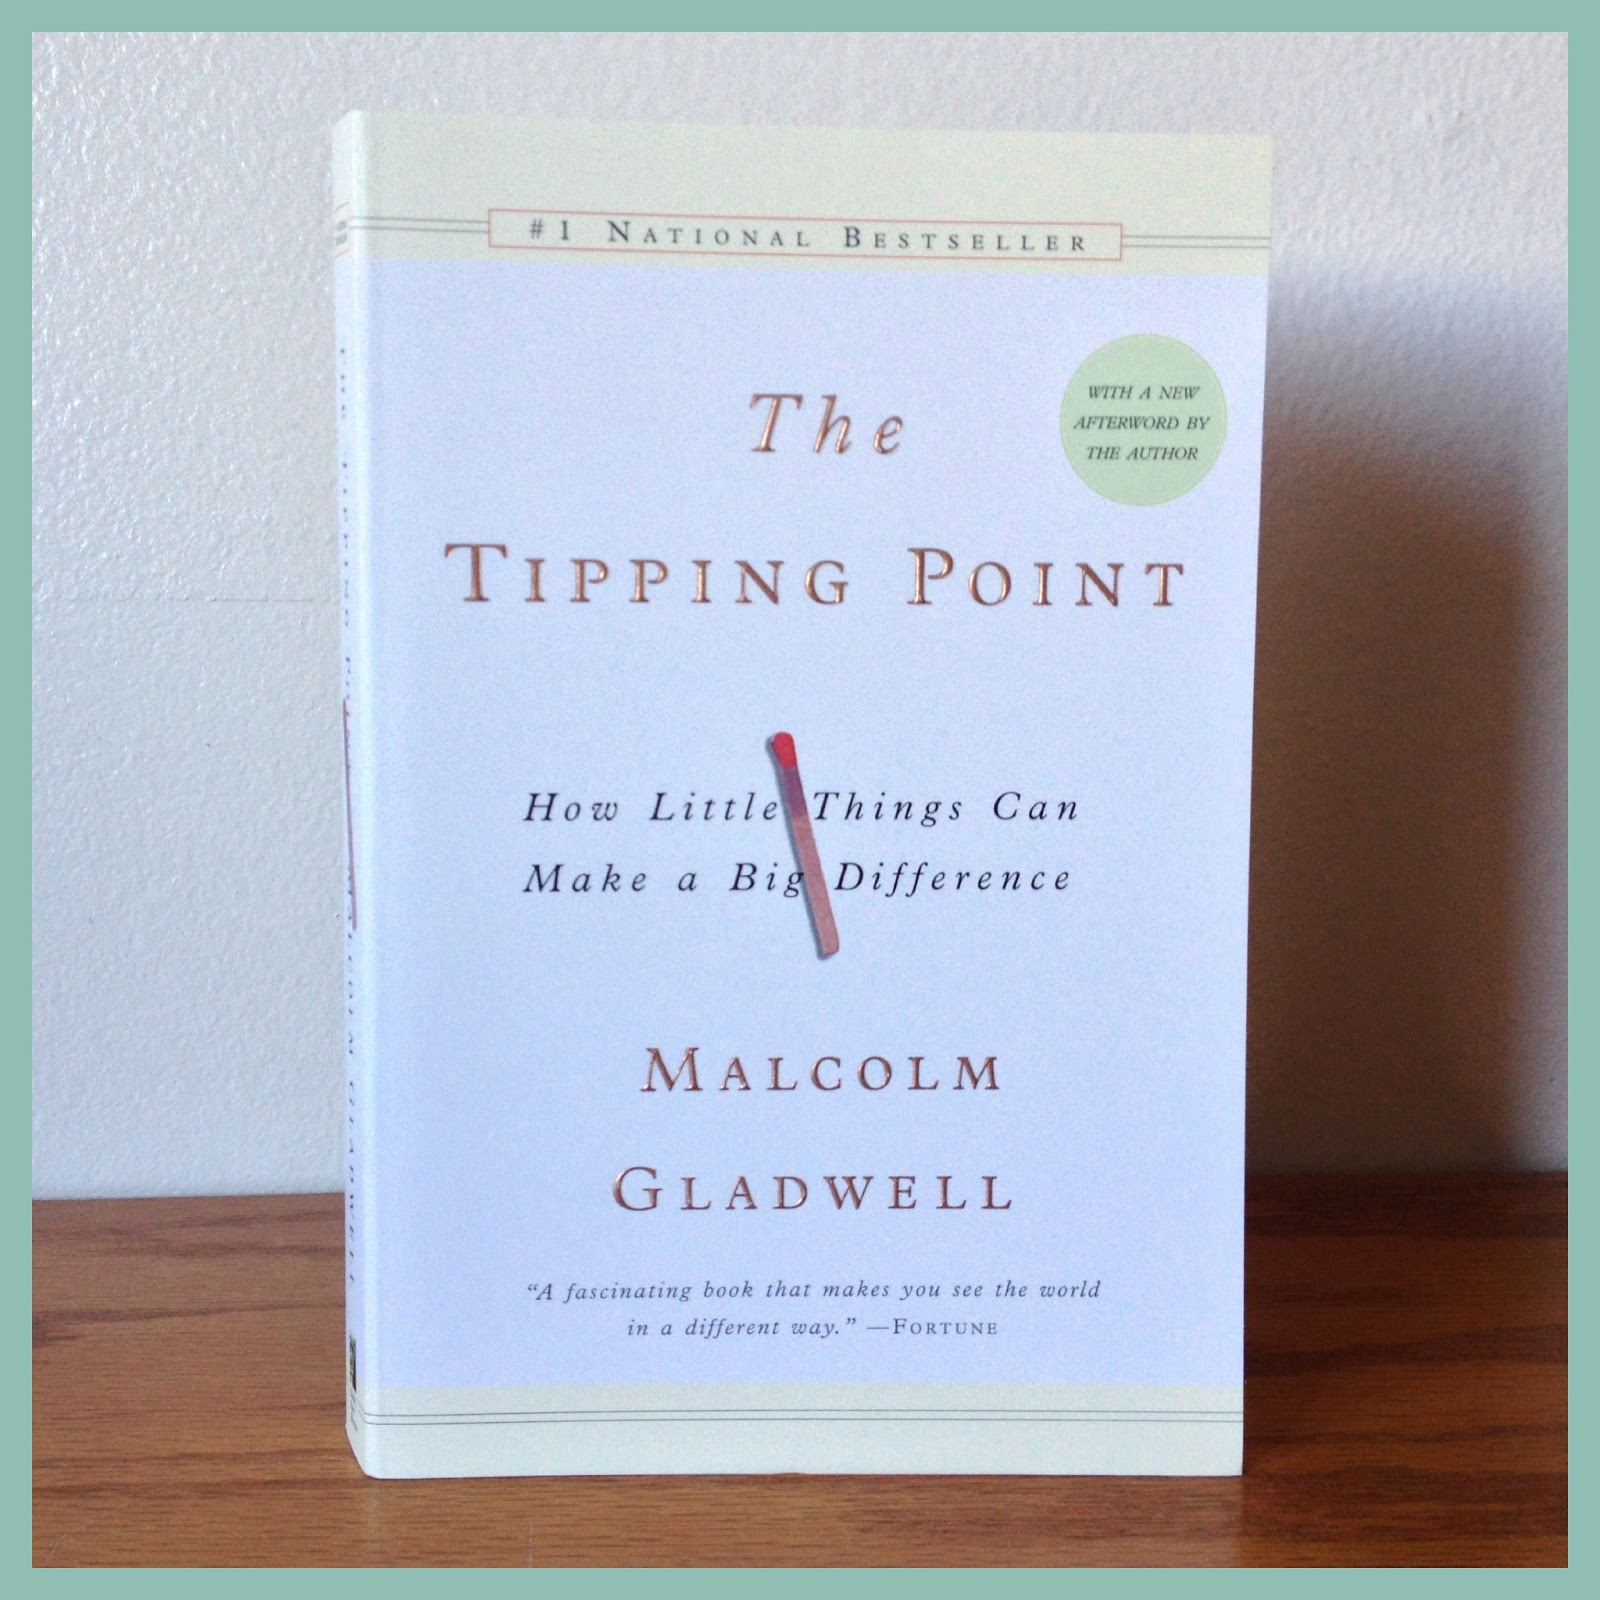 the tipping point by malcolm gladwell 2 essay Brothersjuddcom reviews malcolm gladwell's the tipping point : how little  things can make a  malcolm gladwell (2 books reviewed)  -essay: the  uses of adversity: can underprivileged outsiders have an advantage.